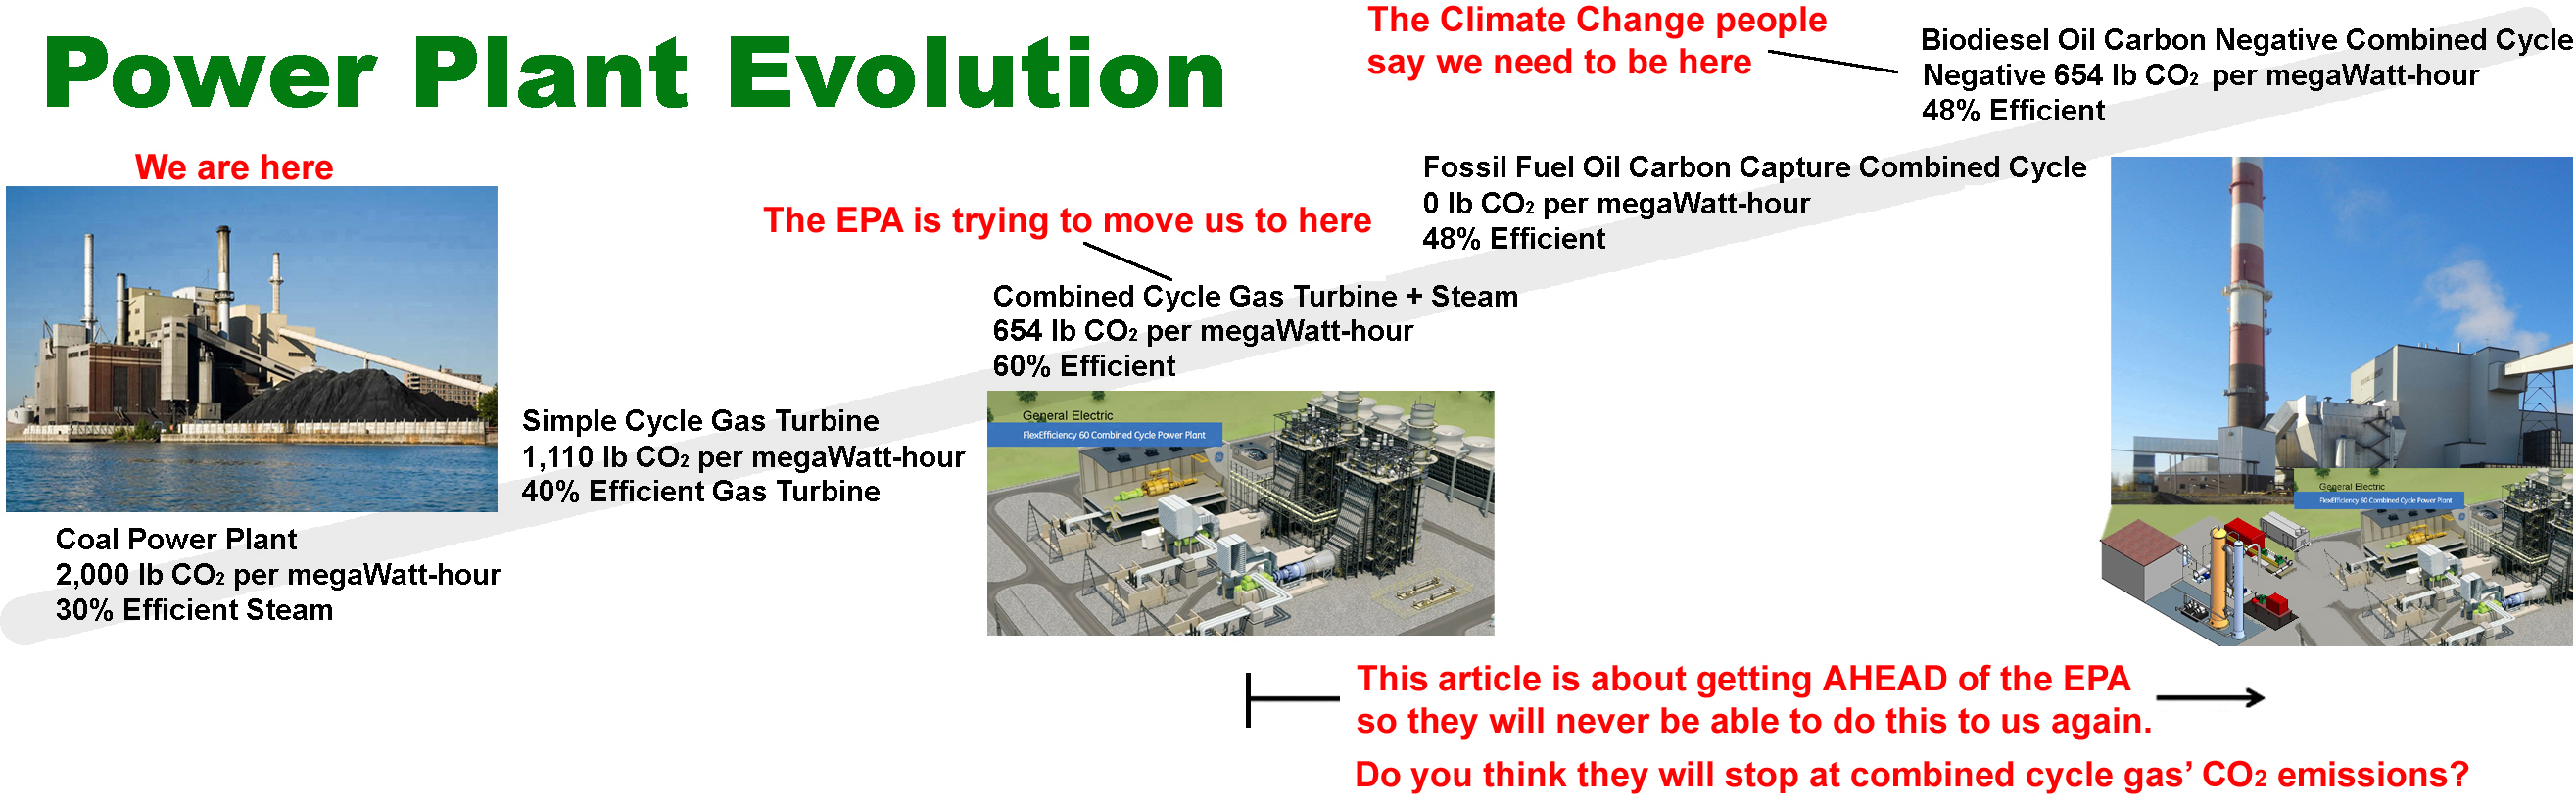 simple cycle power plant diagram dji phantom 2 wi fi wiring michigan s electricity crisis the above illustrates how climate change not fuel economics is driving evolution